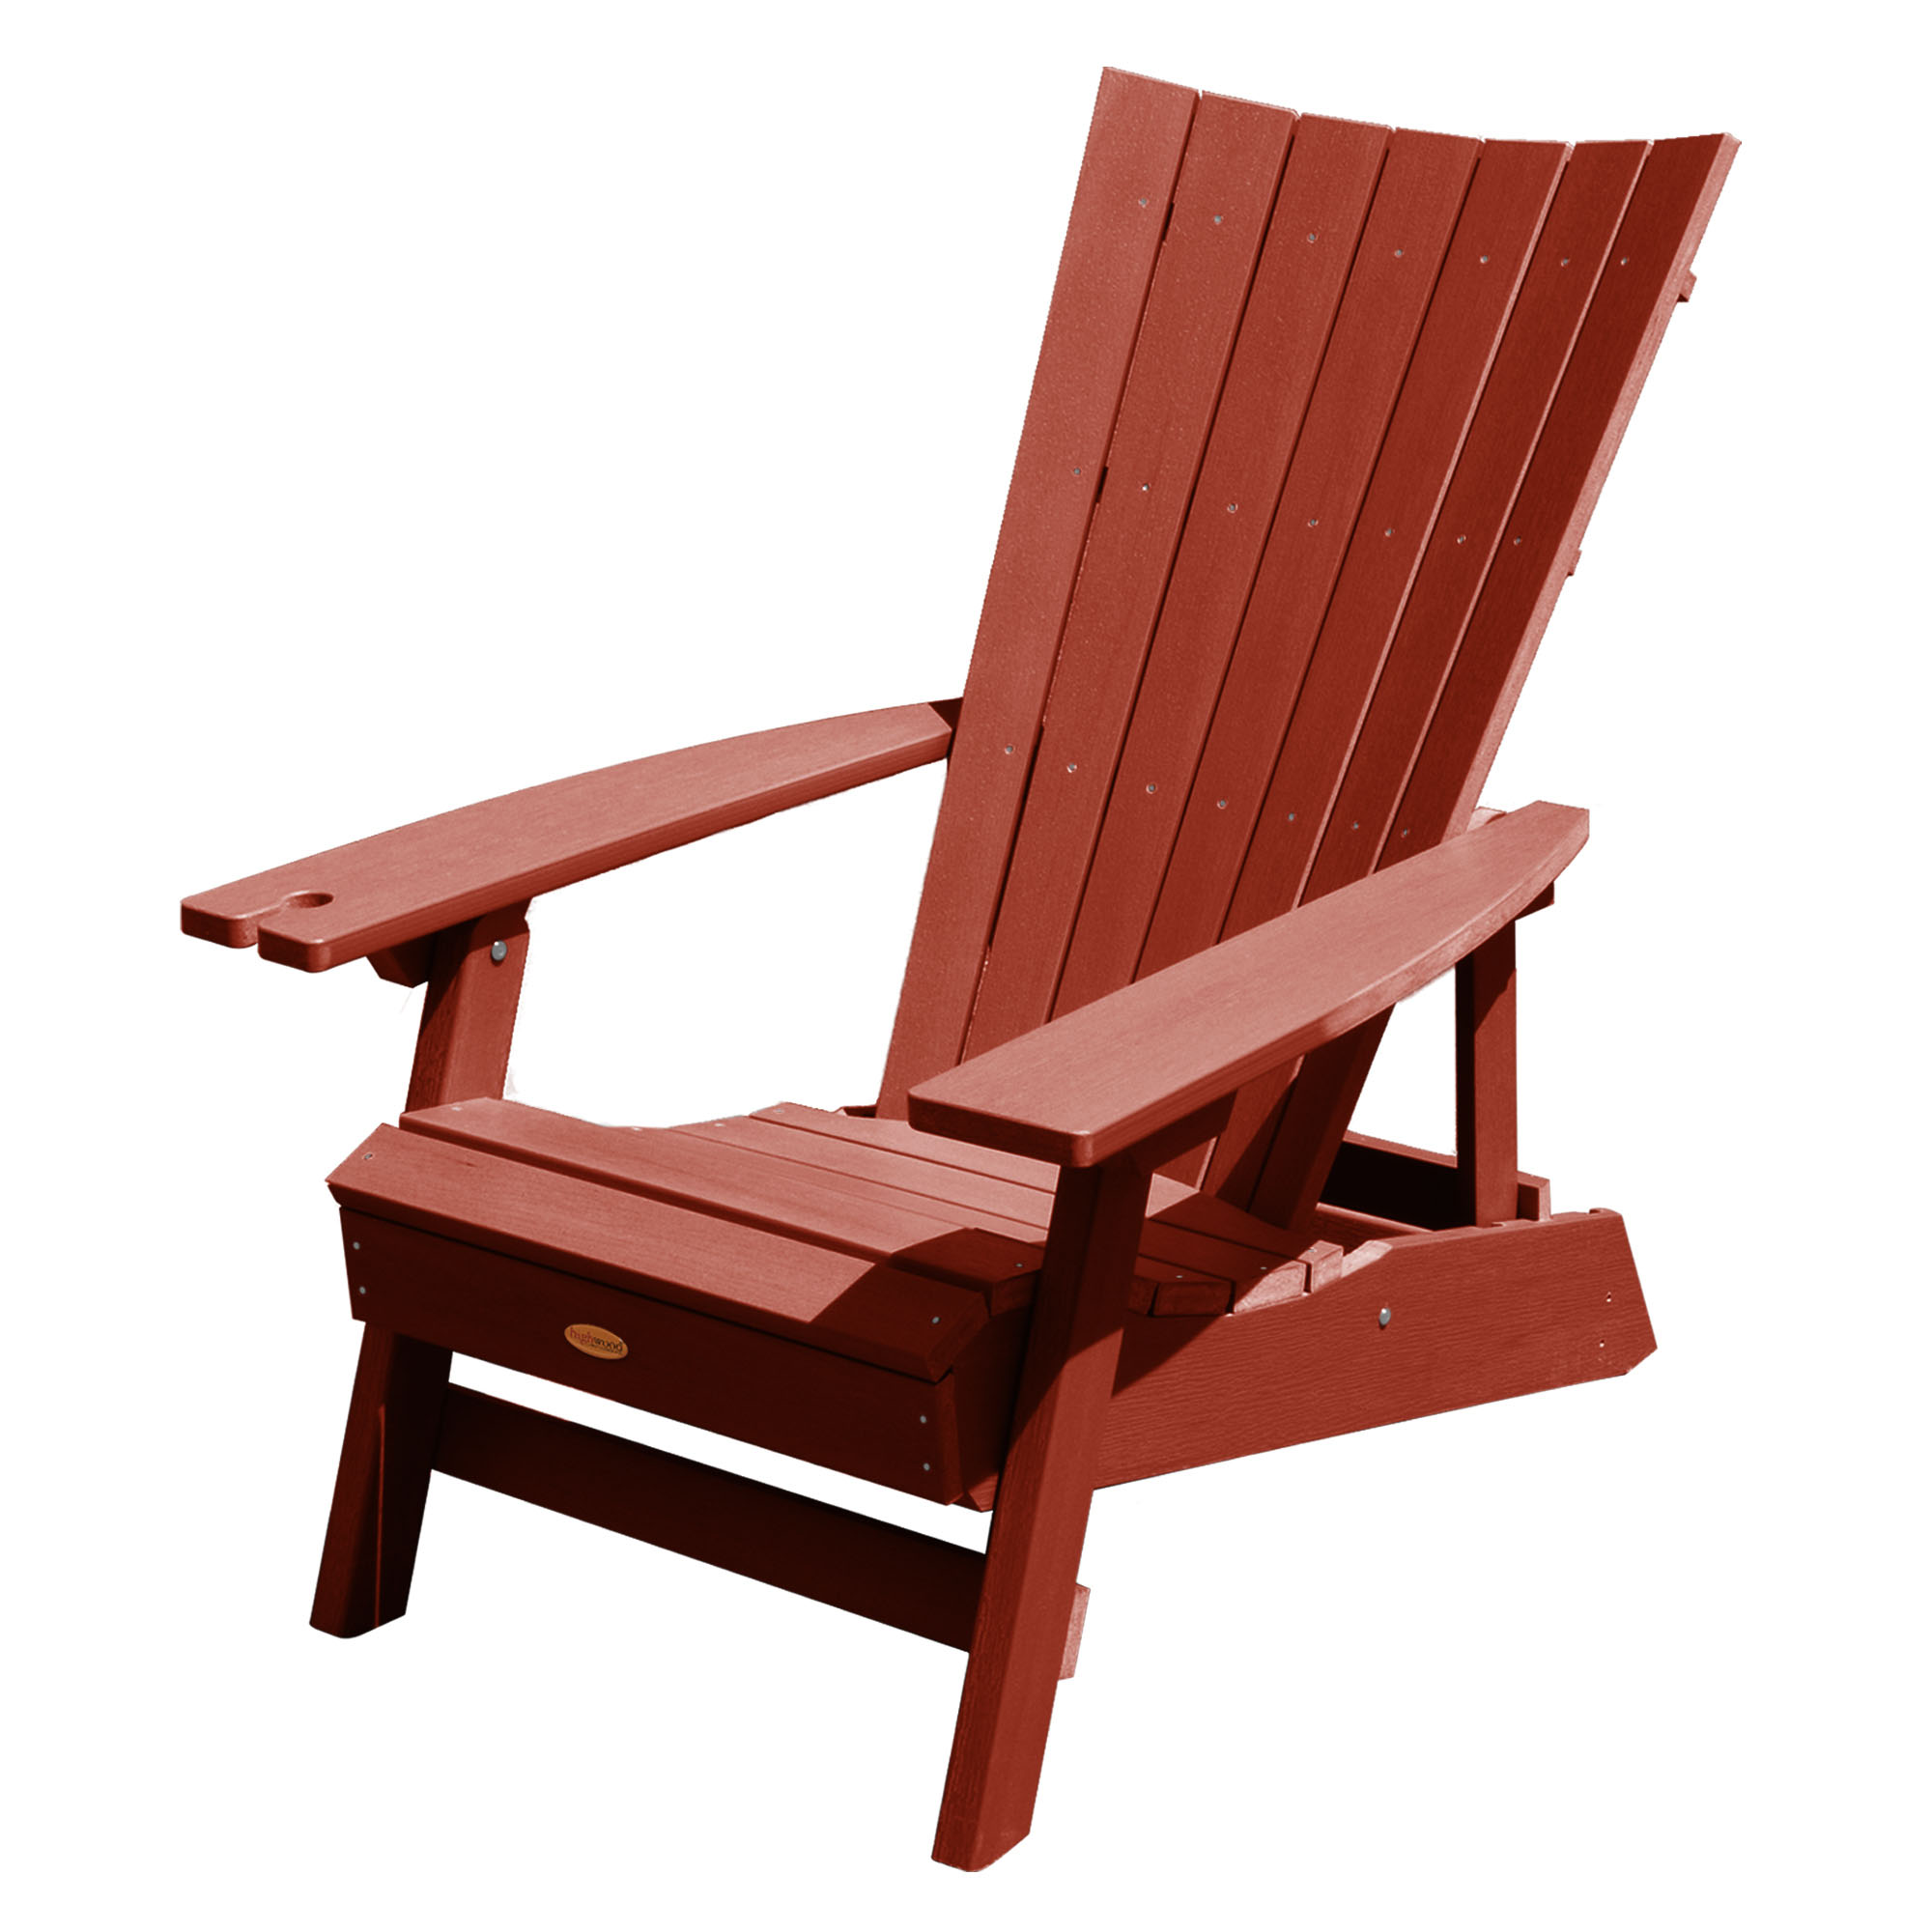 highwood adirondack chair cafe rattan french bistro chairs manhattan beach with wine glass holder